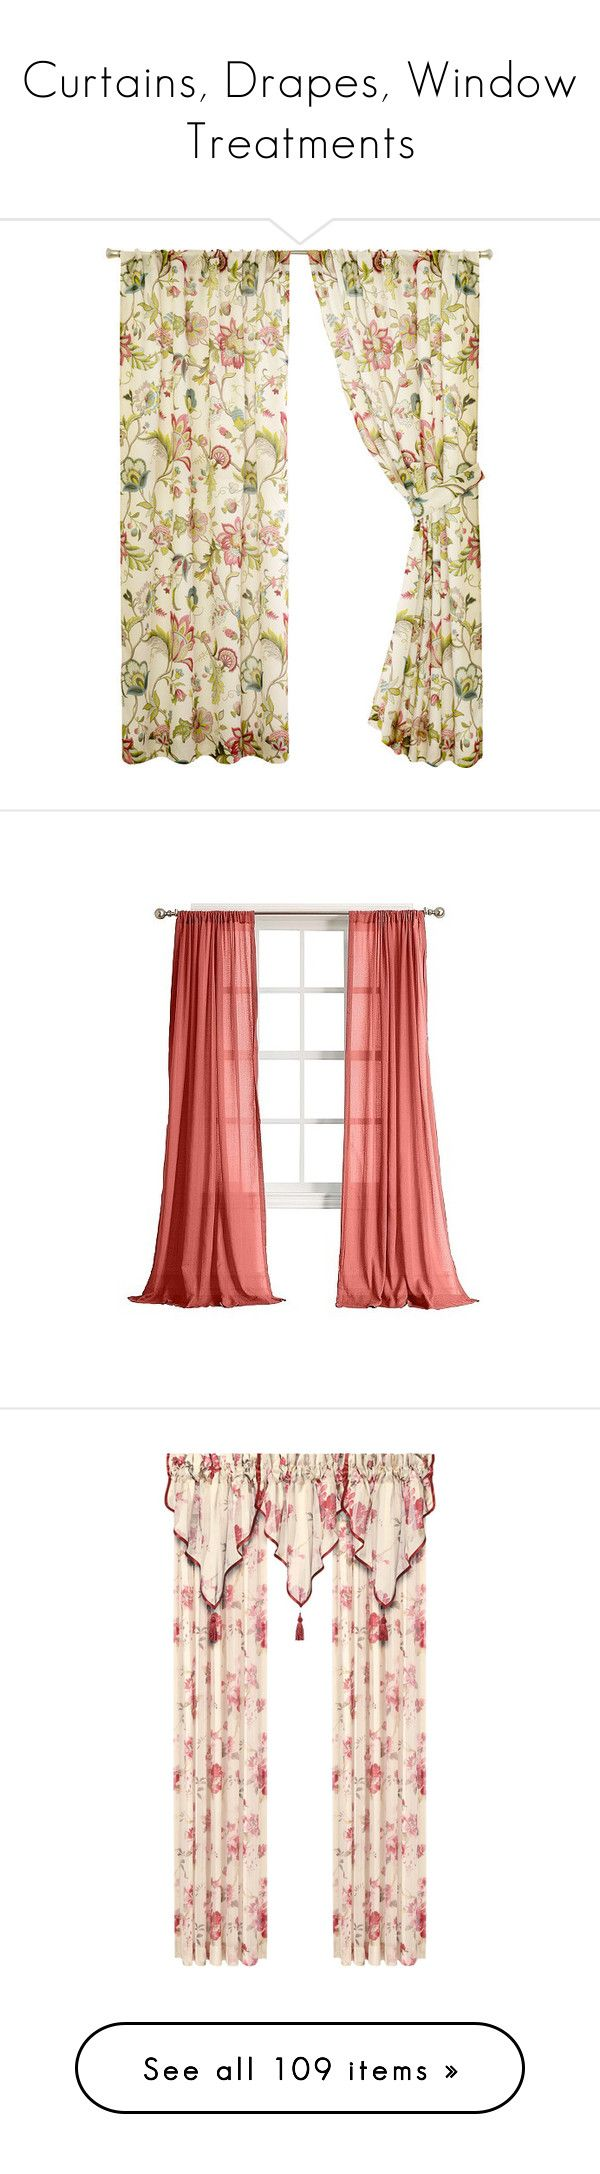 Peach curtains drapes -  Curtains Drapes Window Treatments By Funkyjunkygypsy Liked On Polyvore Featuring Home